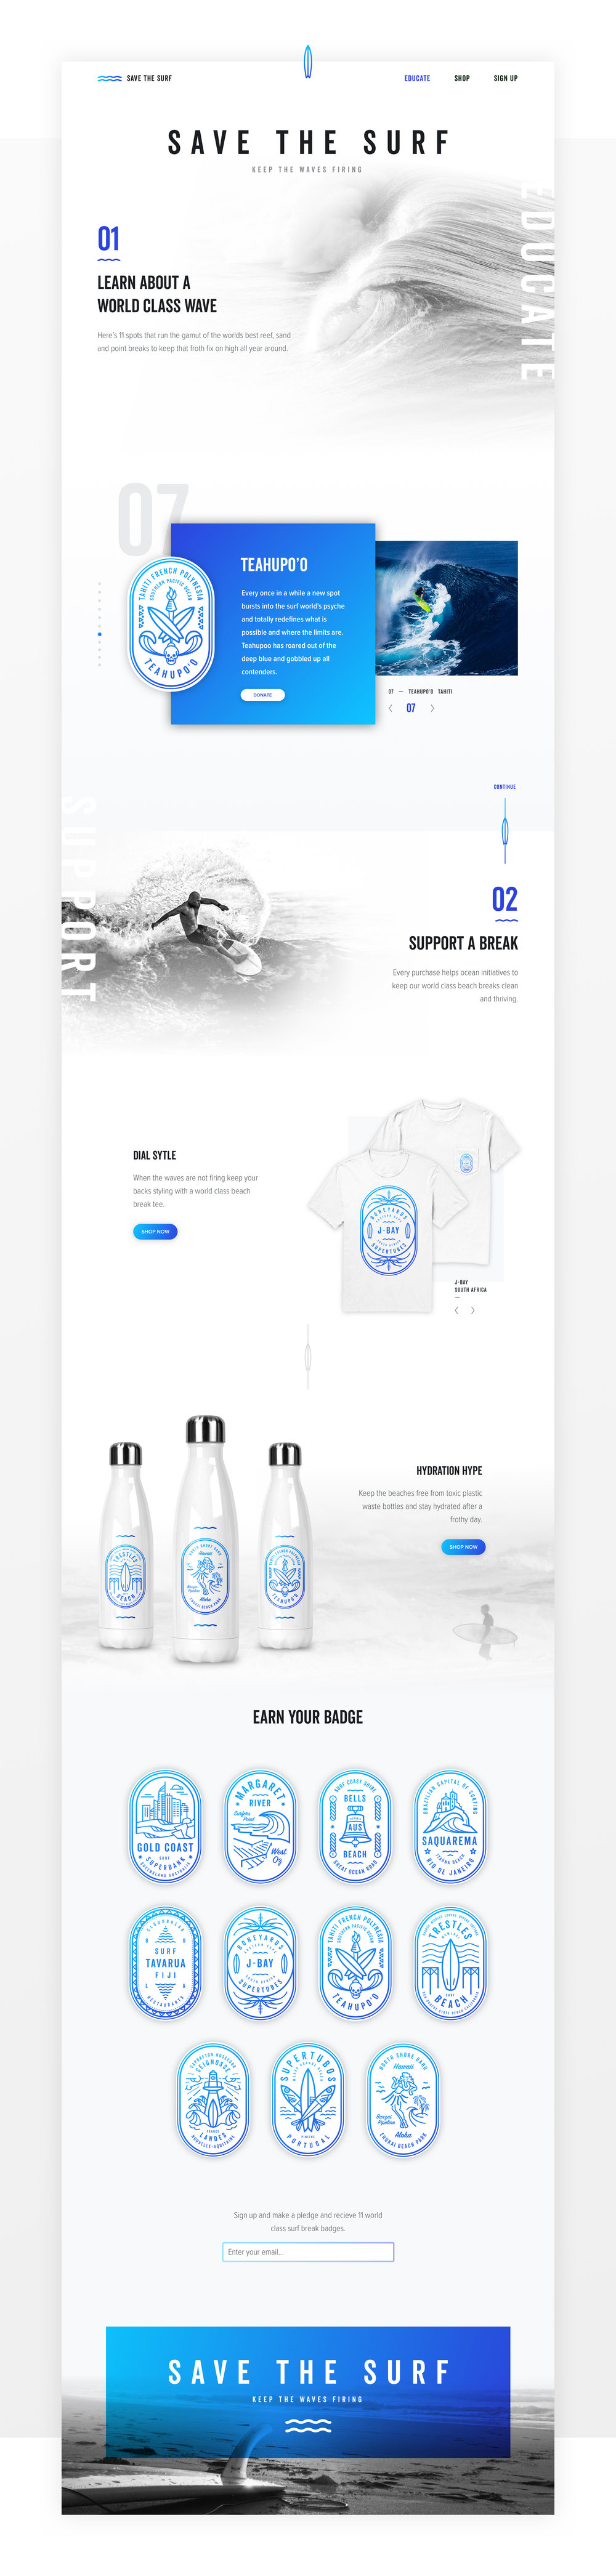 Design_by_Diamond - Save the surf - Webdesign